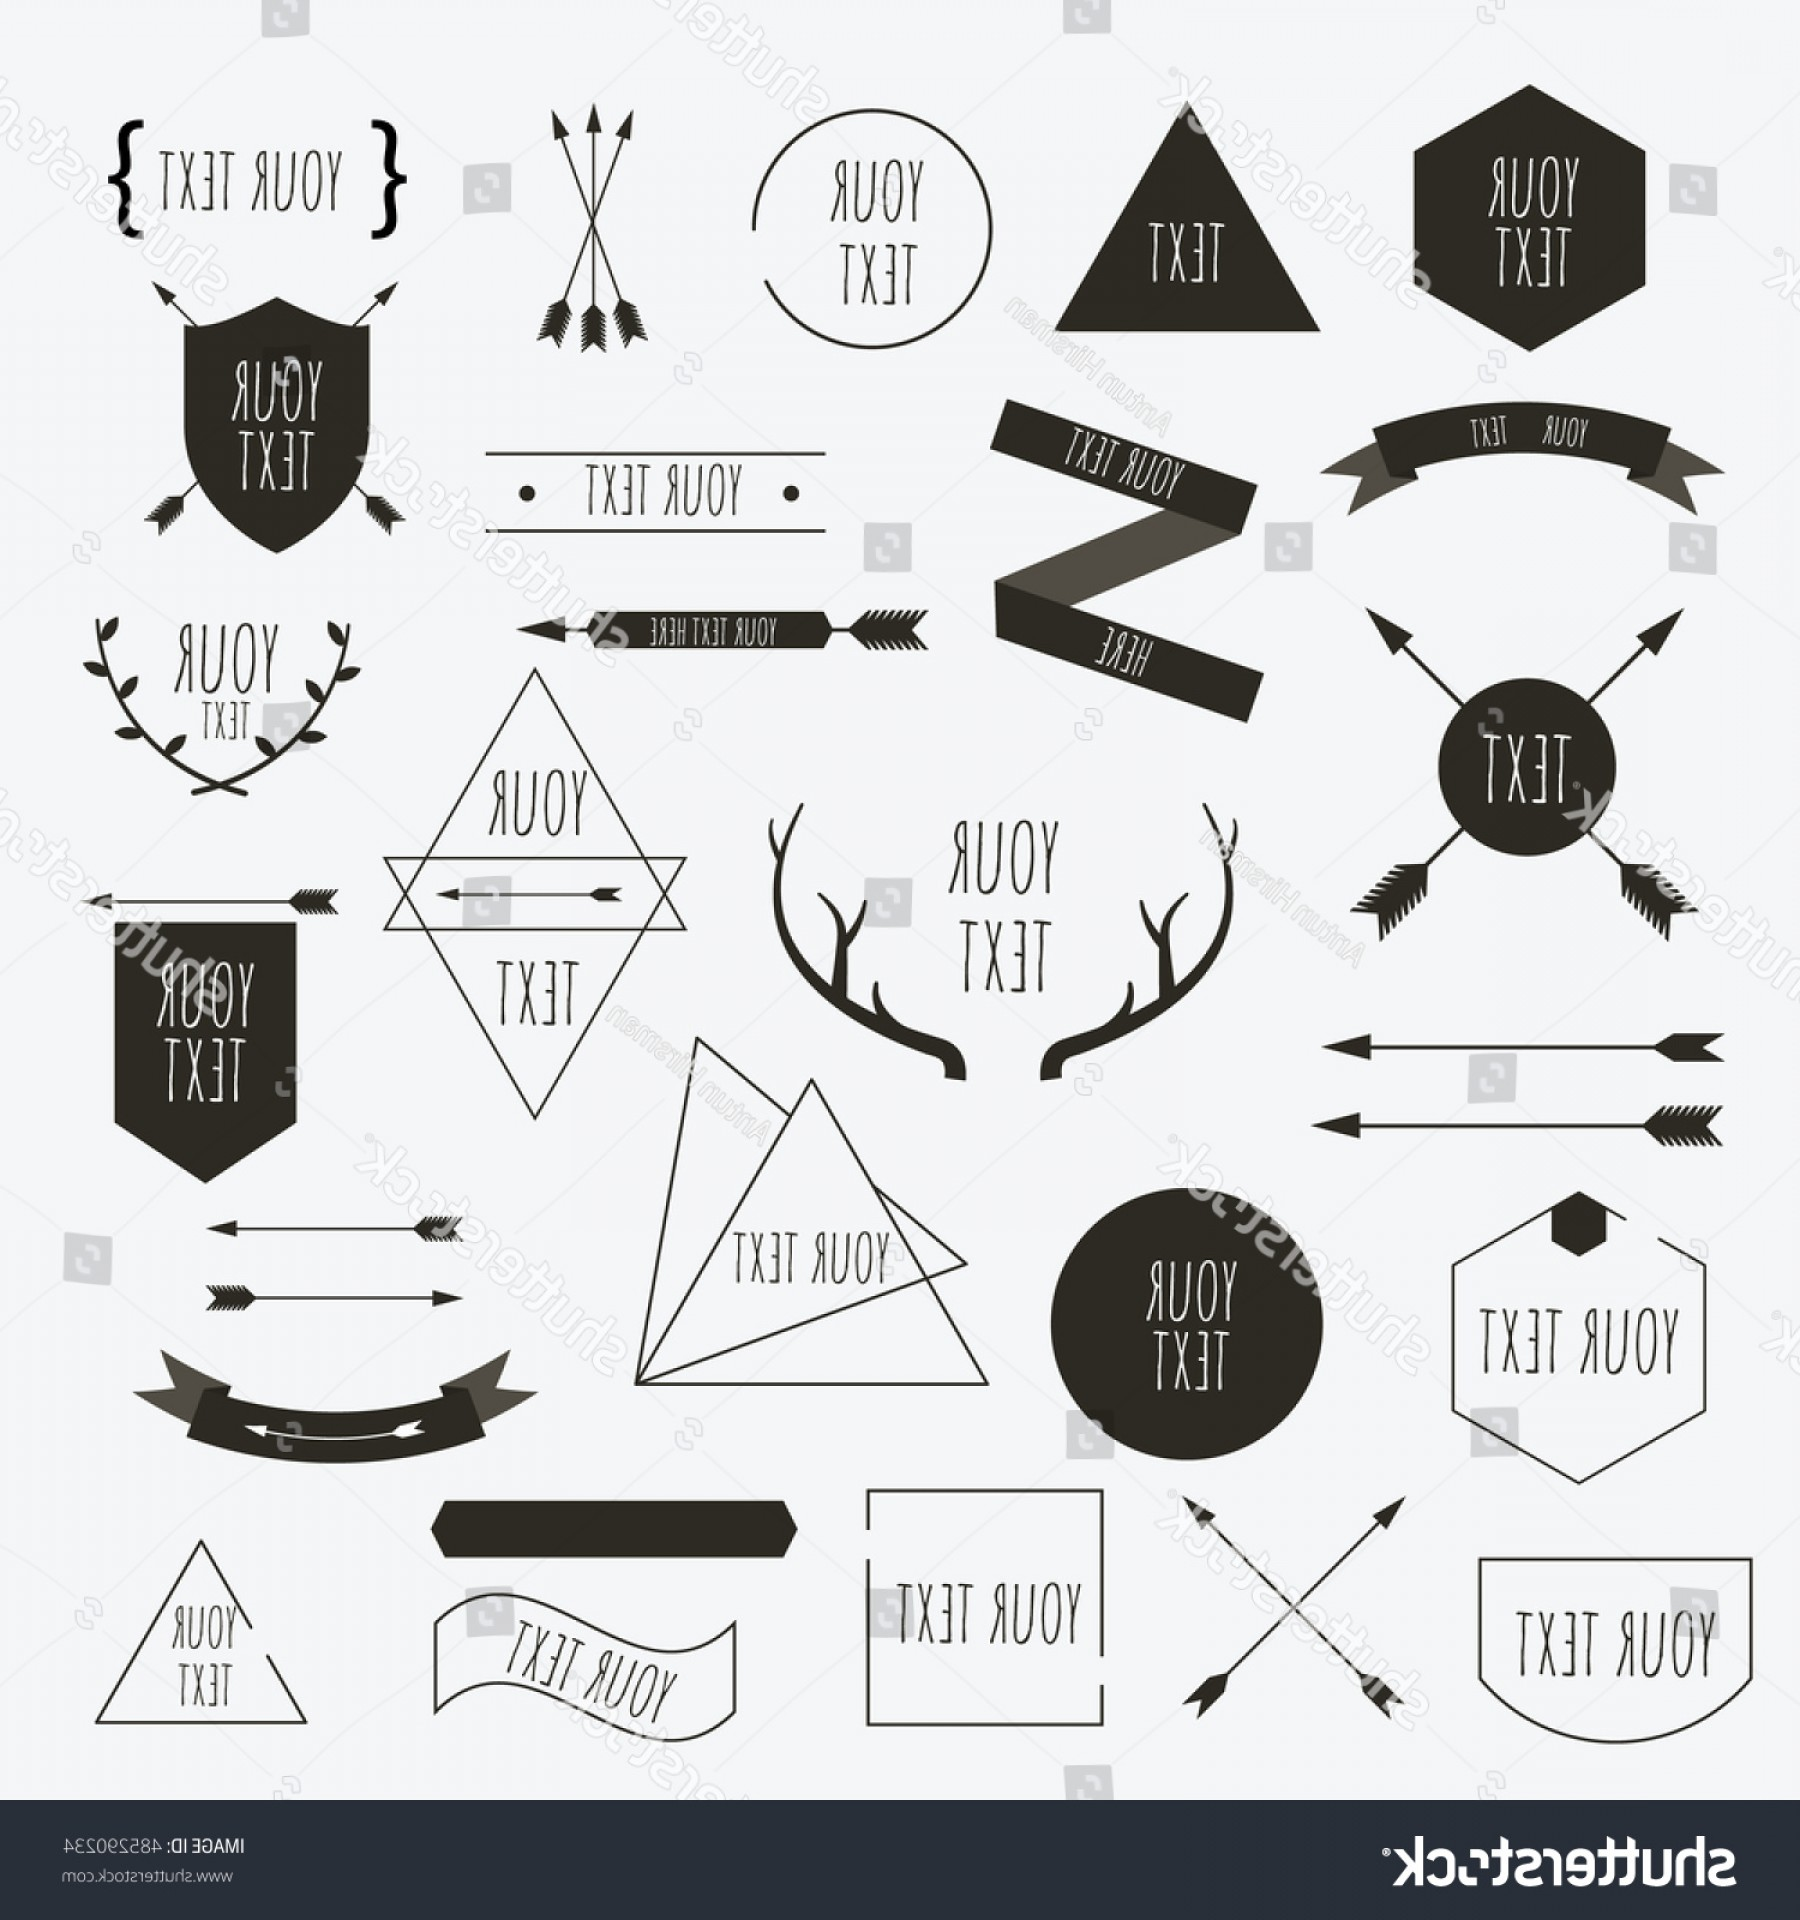 Hipster Vector Ribbon: Retro Style Design Elements Arrows Boho